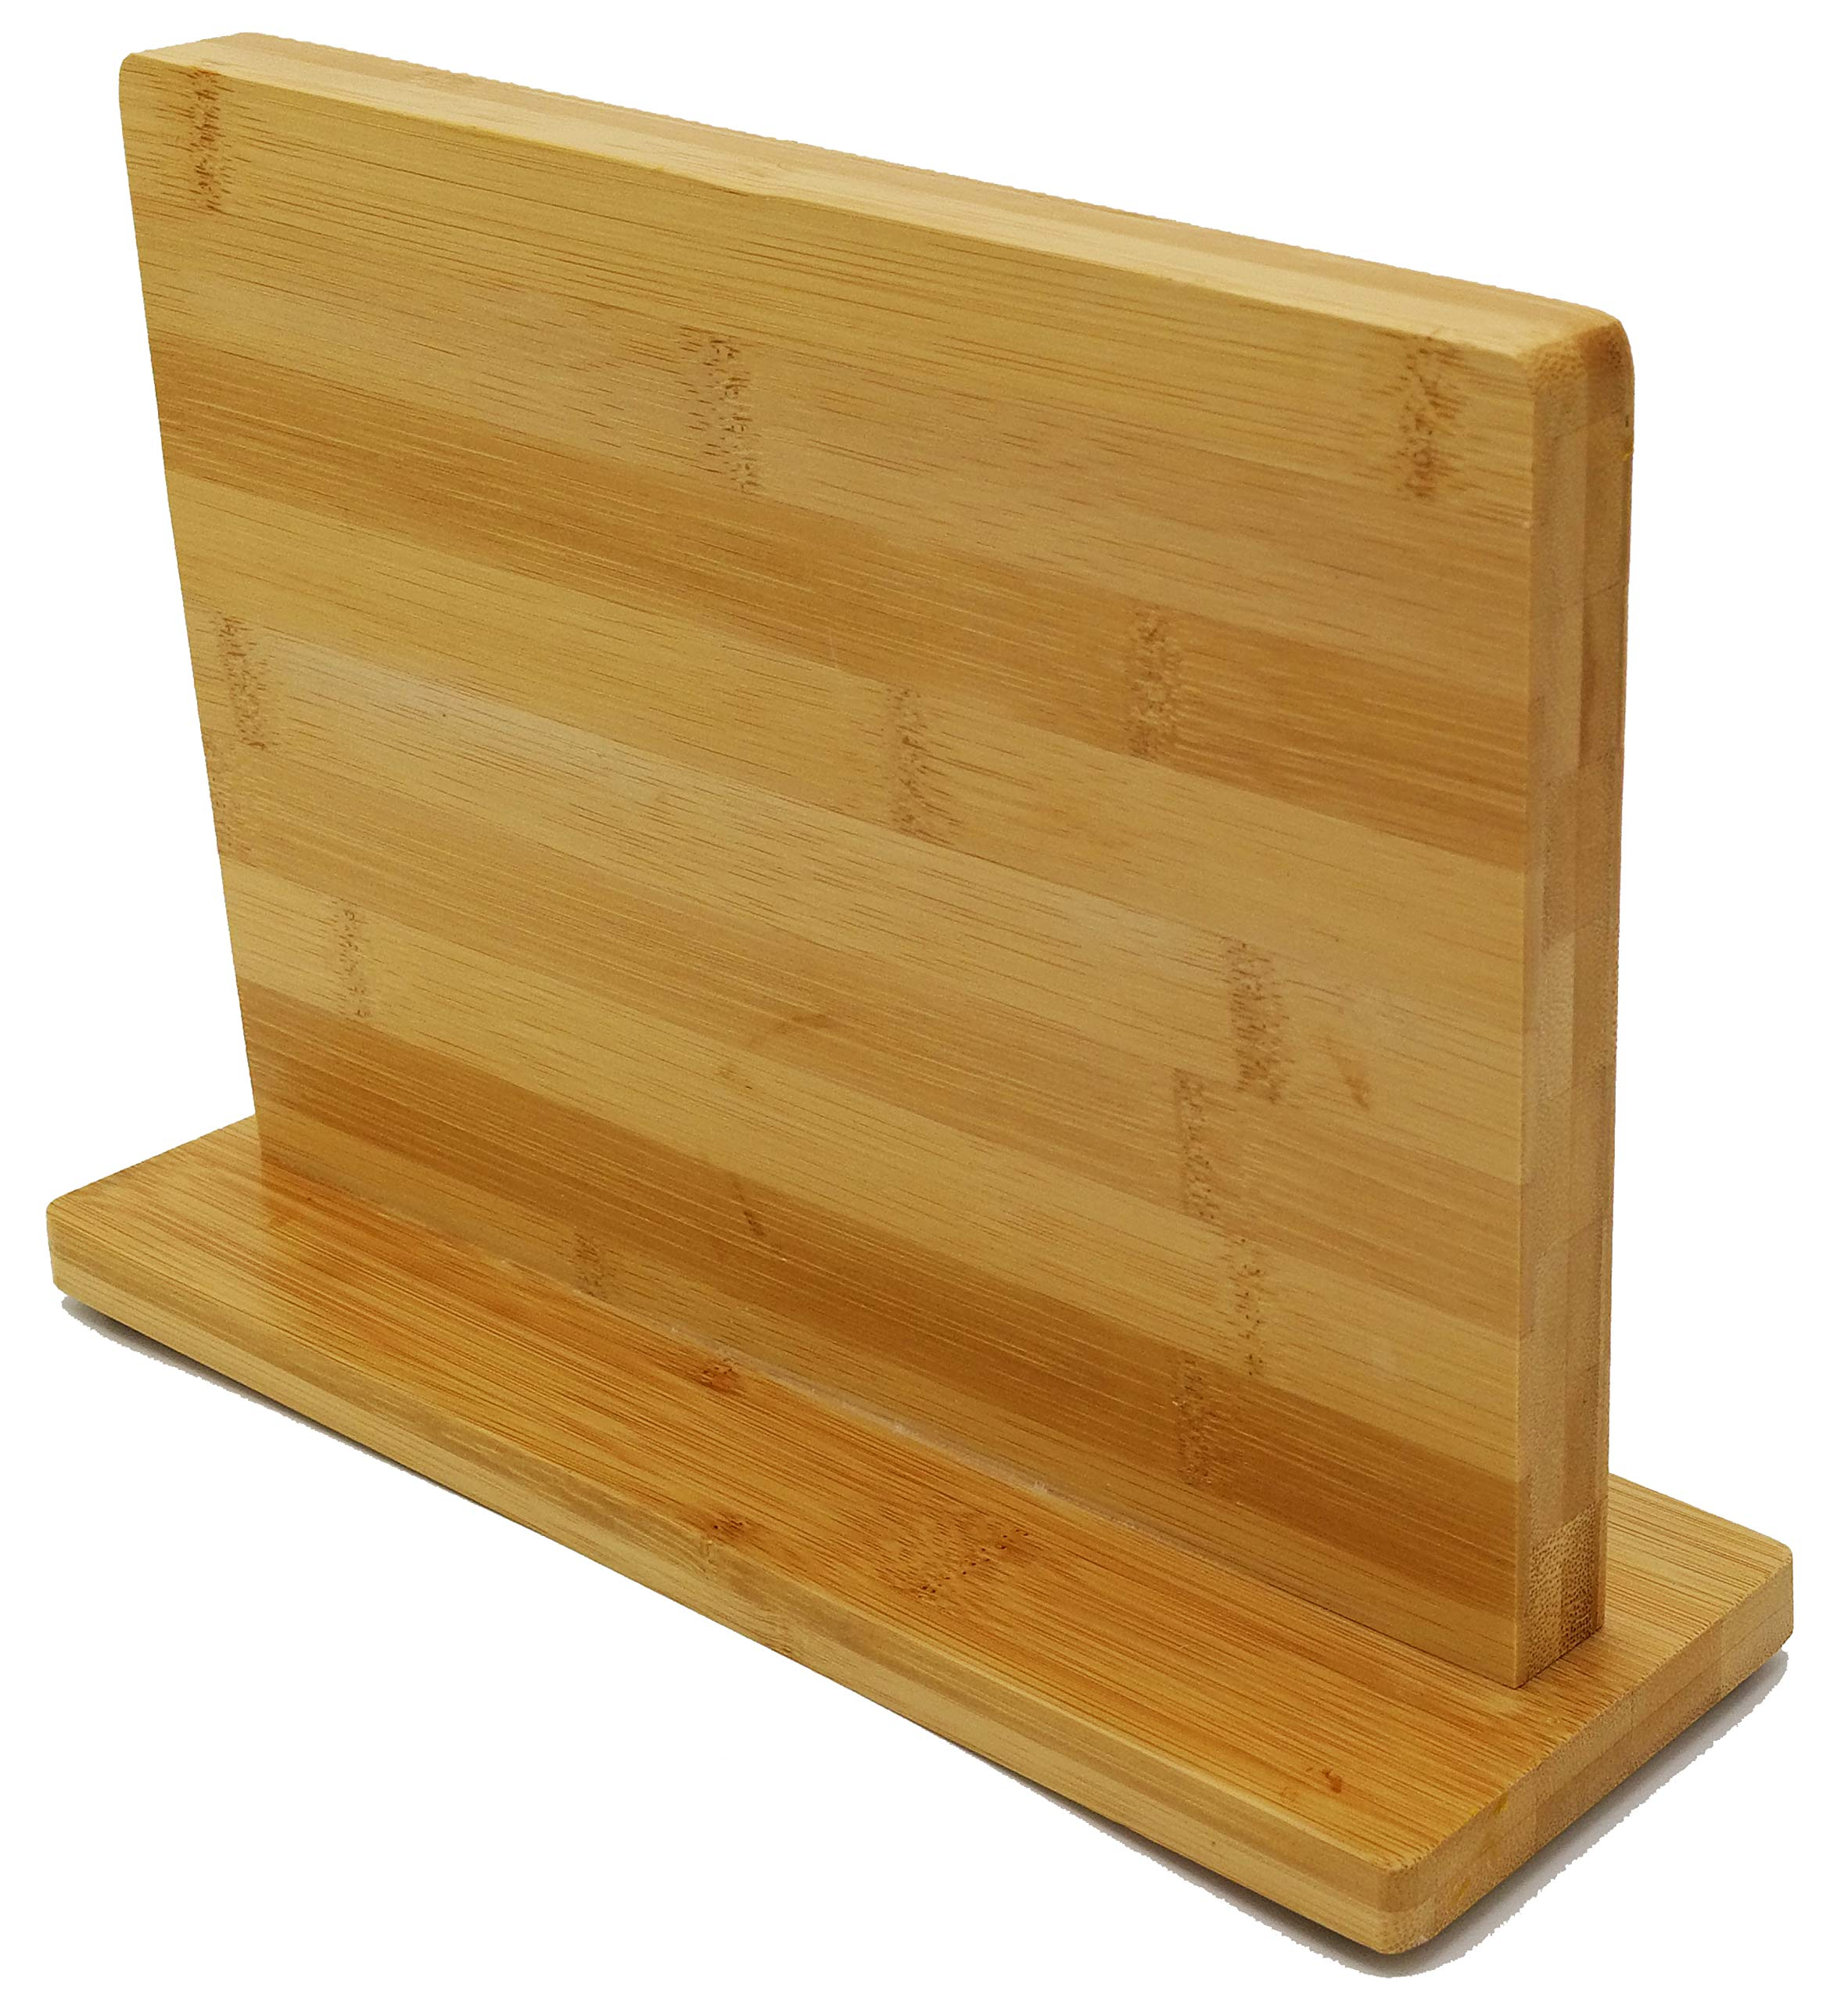 ETTU Kitchen Double-Sided Bamboo Magnetic Knife Block-Fits All Knives and Other Utensils Up to 8''-Saves Space, Displays Knives, Keeps Knives Sharp and Clean, Easy Access to Knives while Cooking